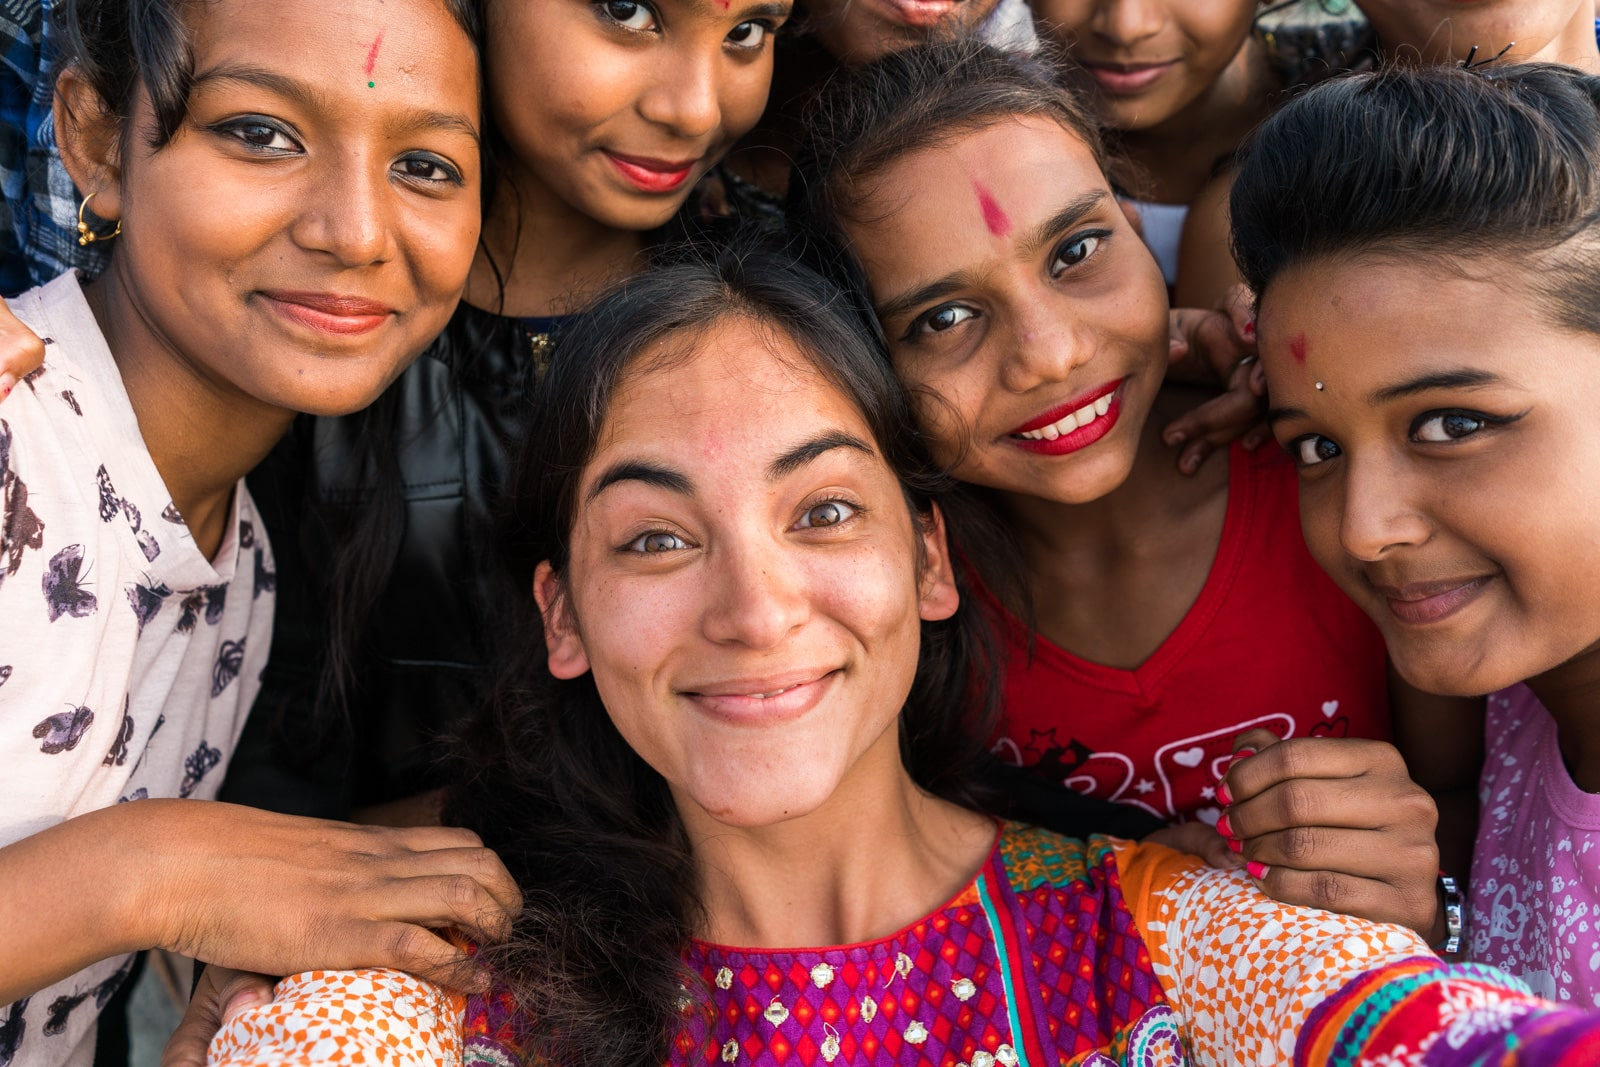 Selfie with Indian girls in Assam, India